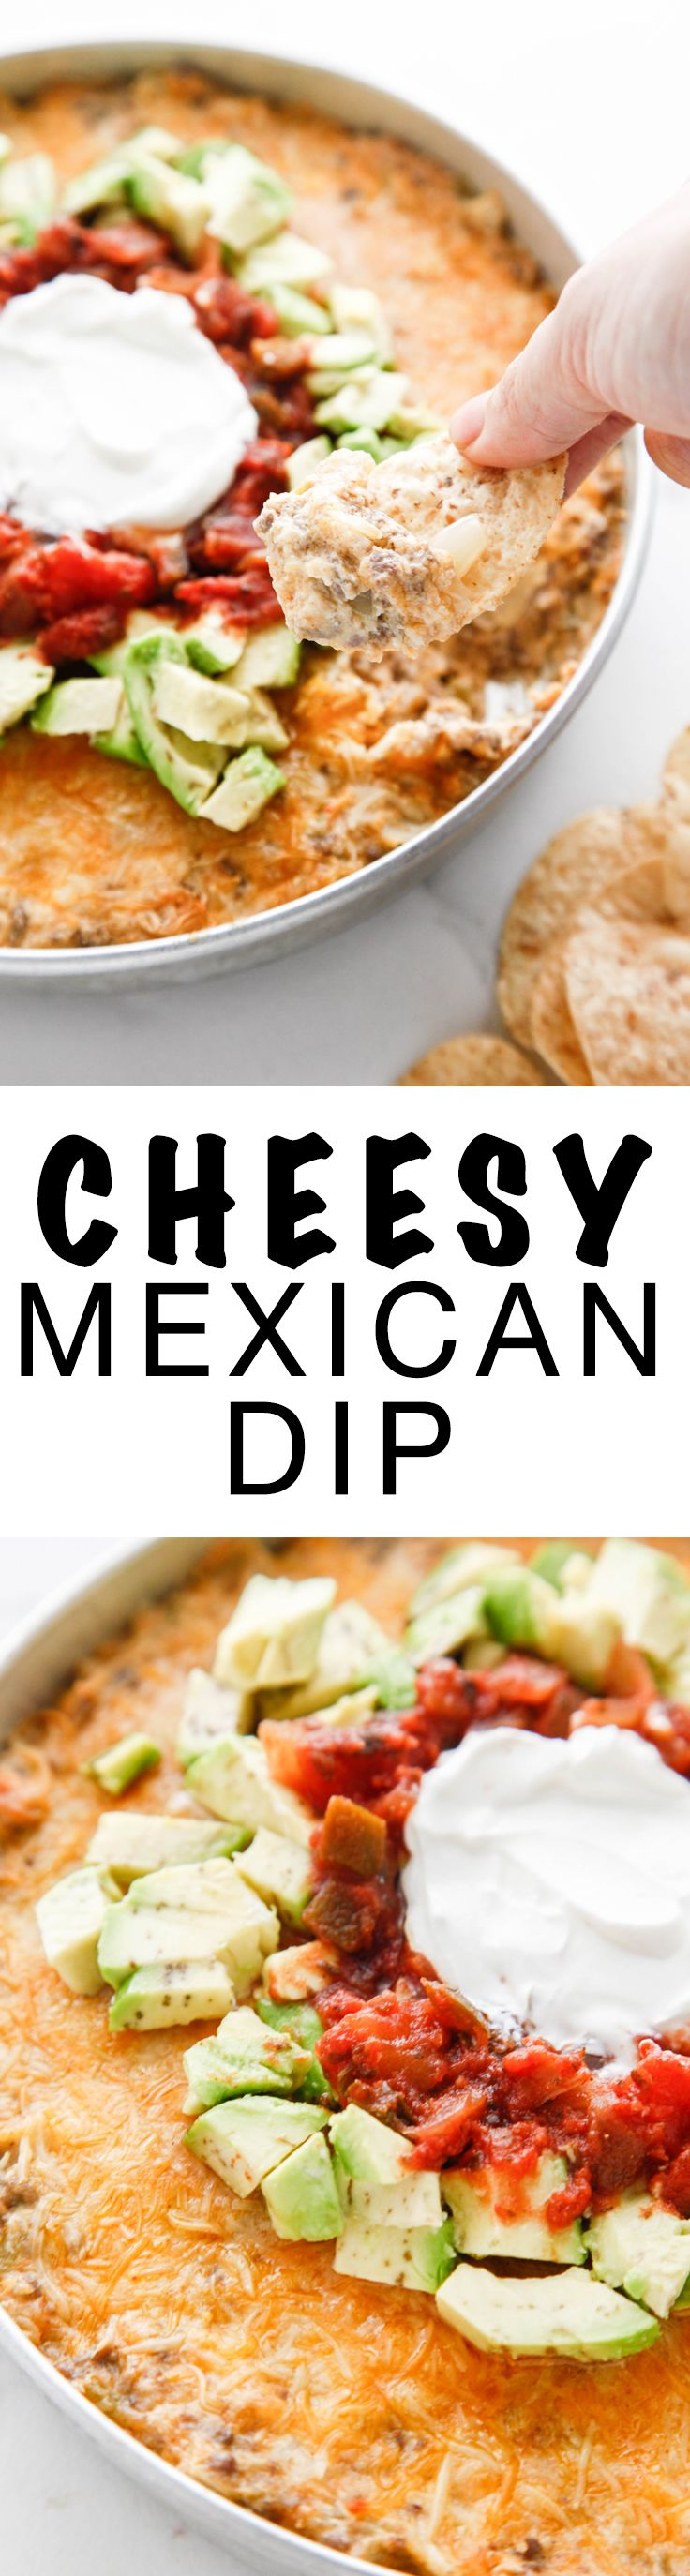 Get ready for game day with this Cheesy Mexican Dip from @TheBrooklynCook Prefect for tailgating and all parties! via @thebrooklyncook